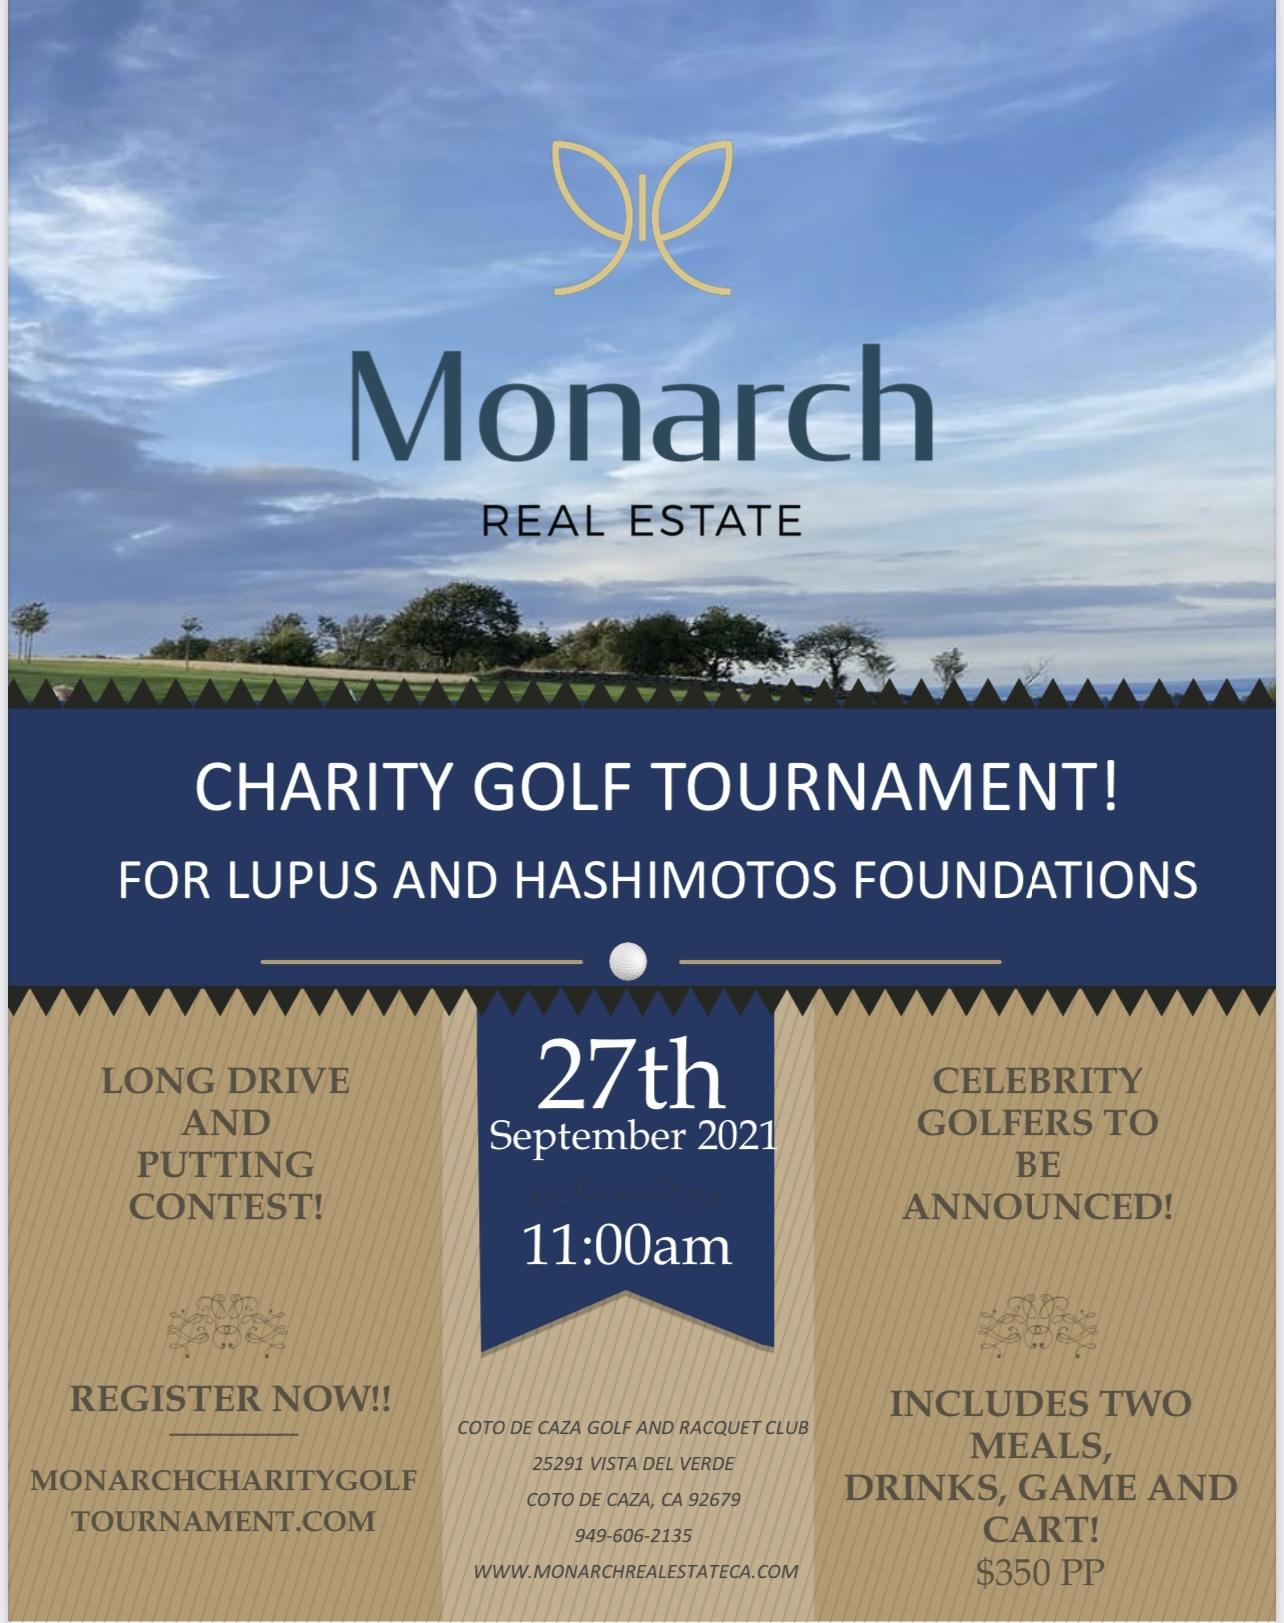 Monarch Real Estate Charity Golf Tournament!